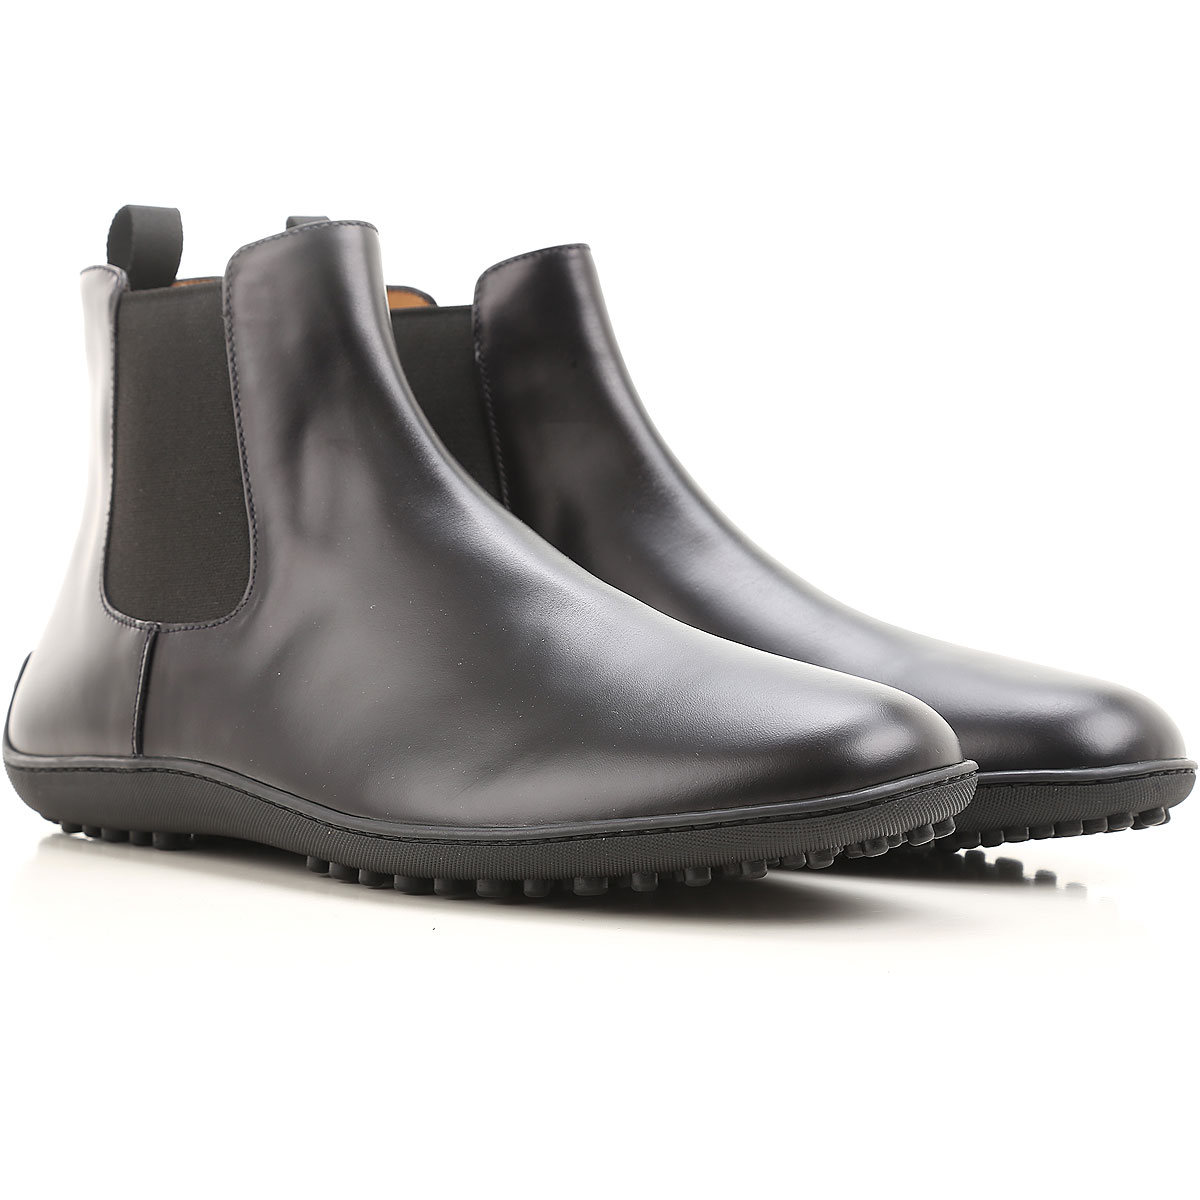 Image of Car Shoe Chelsea Boots for Men, Black, Leather, 2017, 7 8.5 9.5